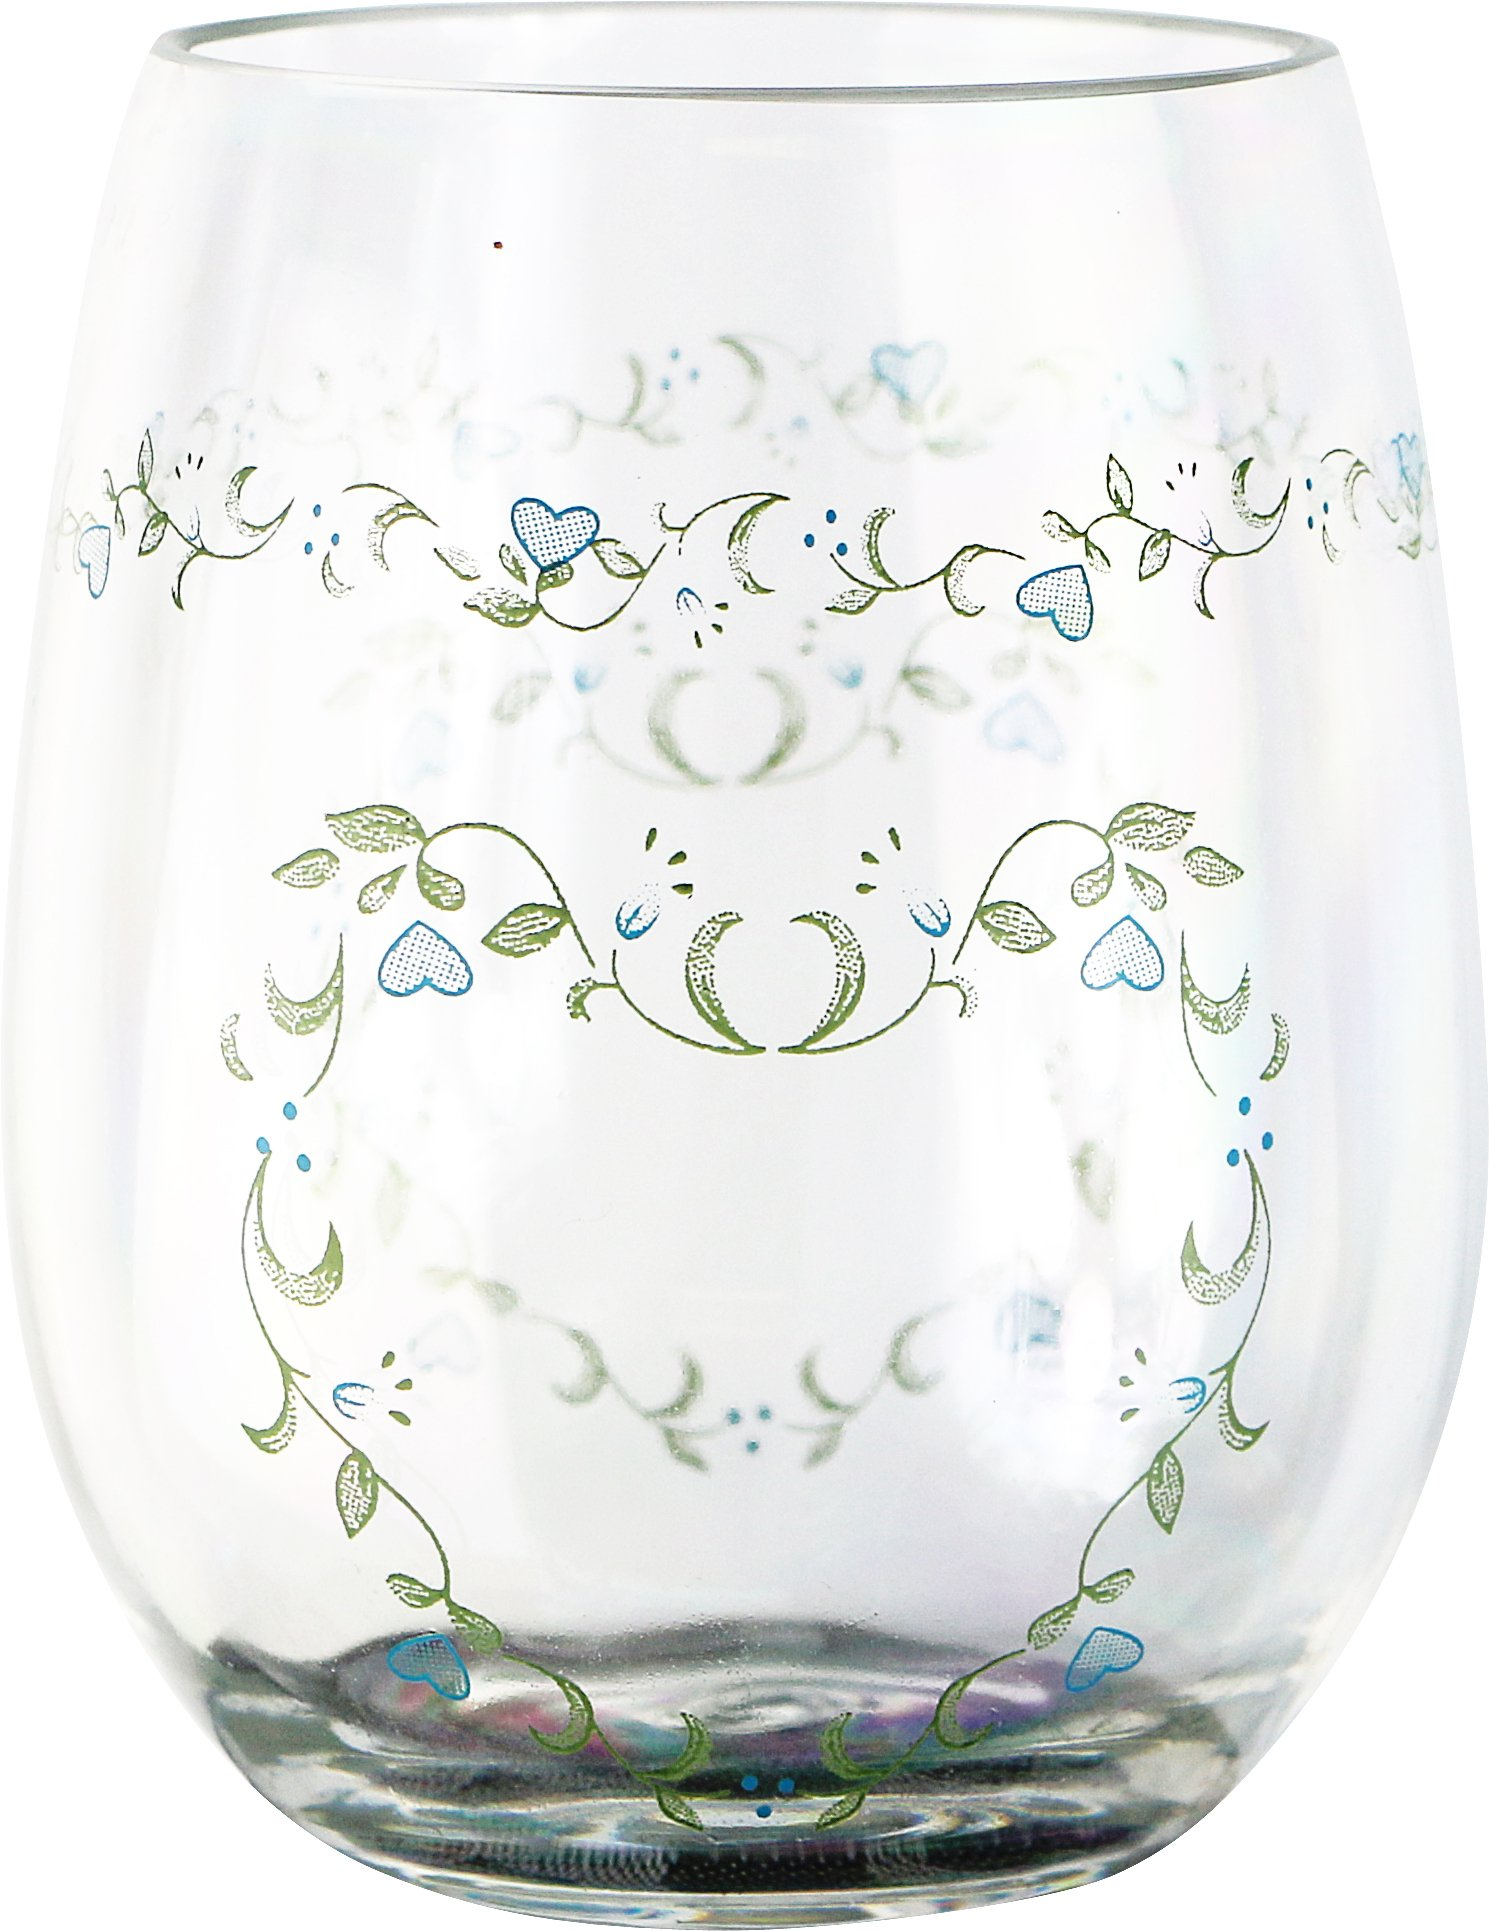 Corelle Coordinates by Reston Lloyd Acrylic Country Cottage Stemless Wine Glasses (Set of 4), 16 oz, Clear